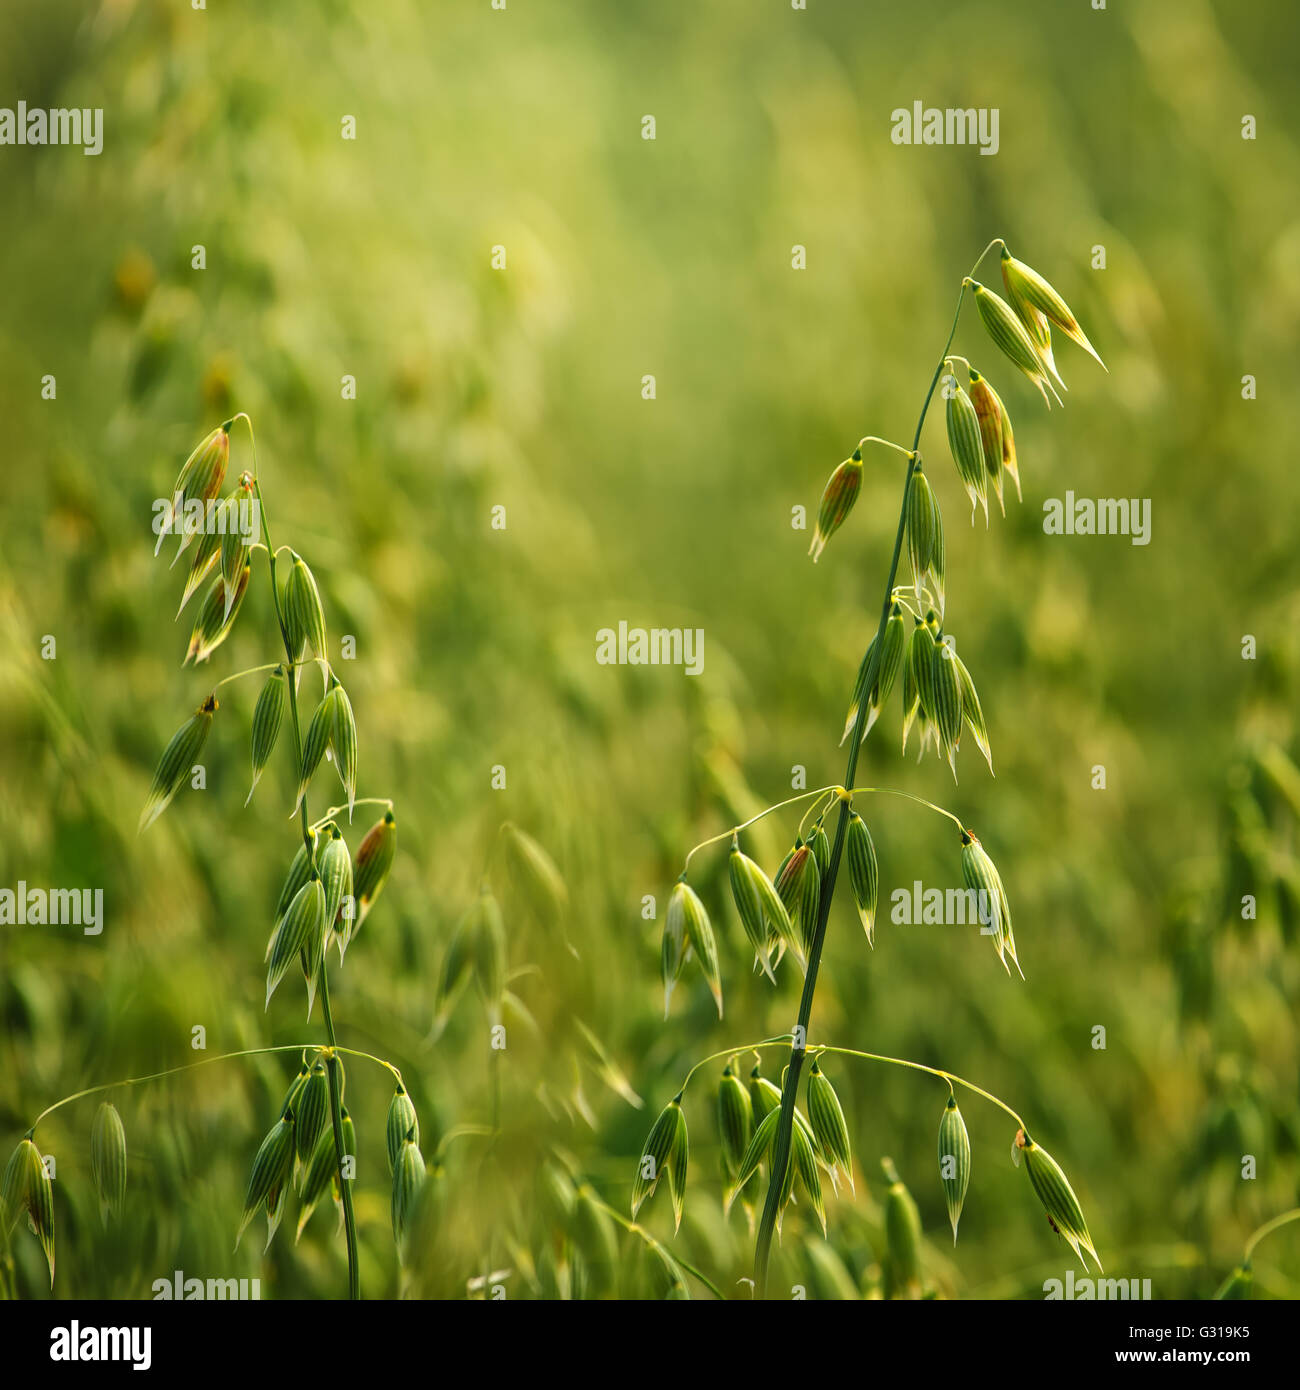 Oat field detail, green crops growing in cultivated field - Stock Image